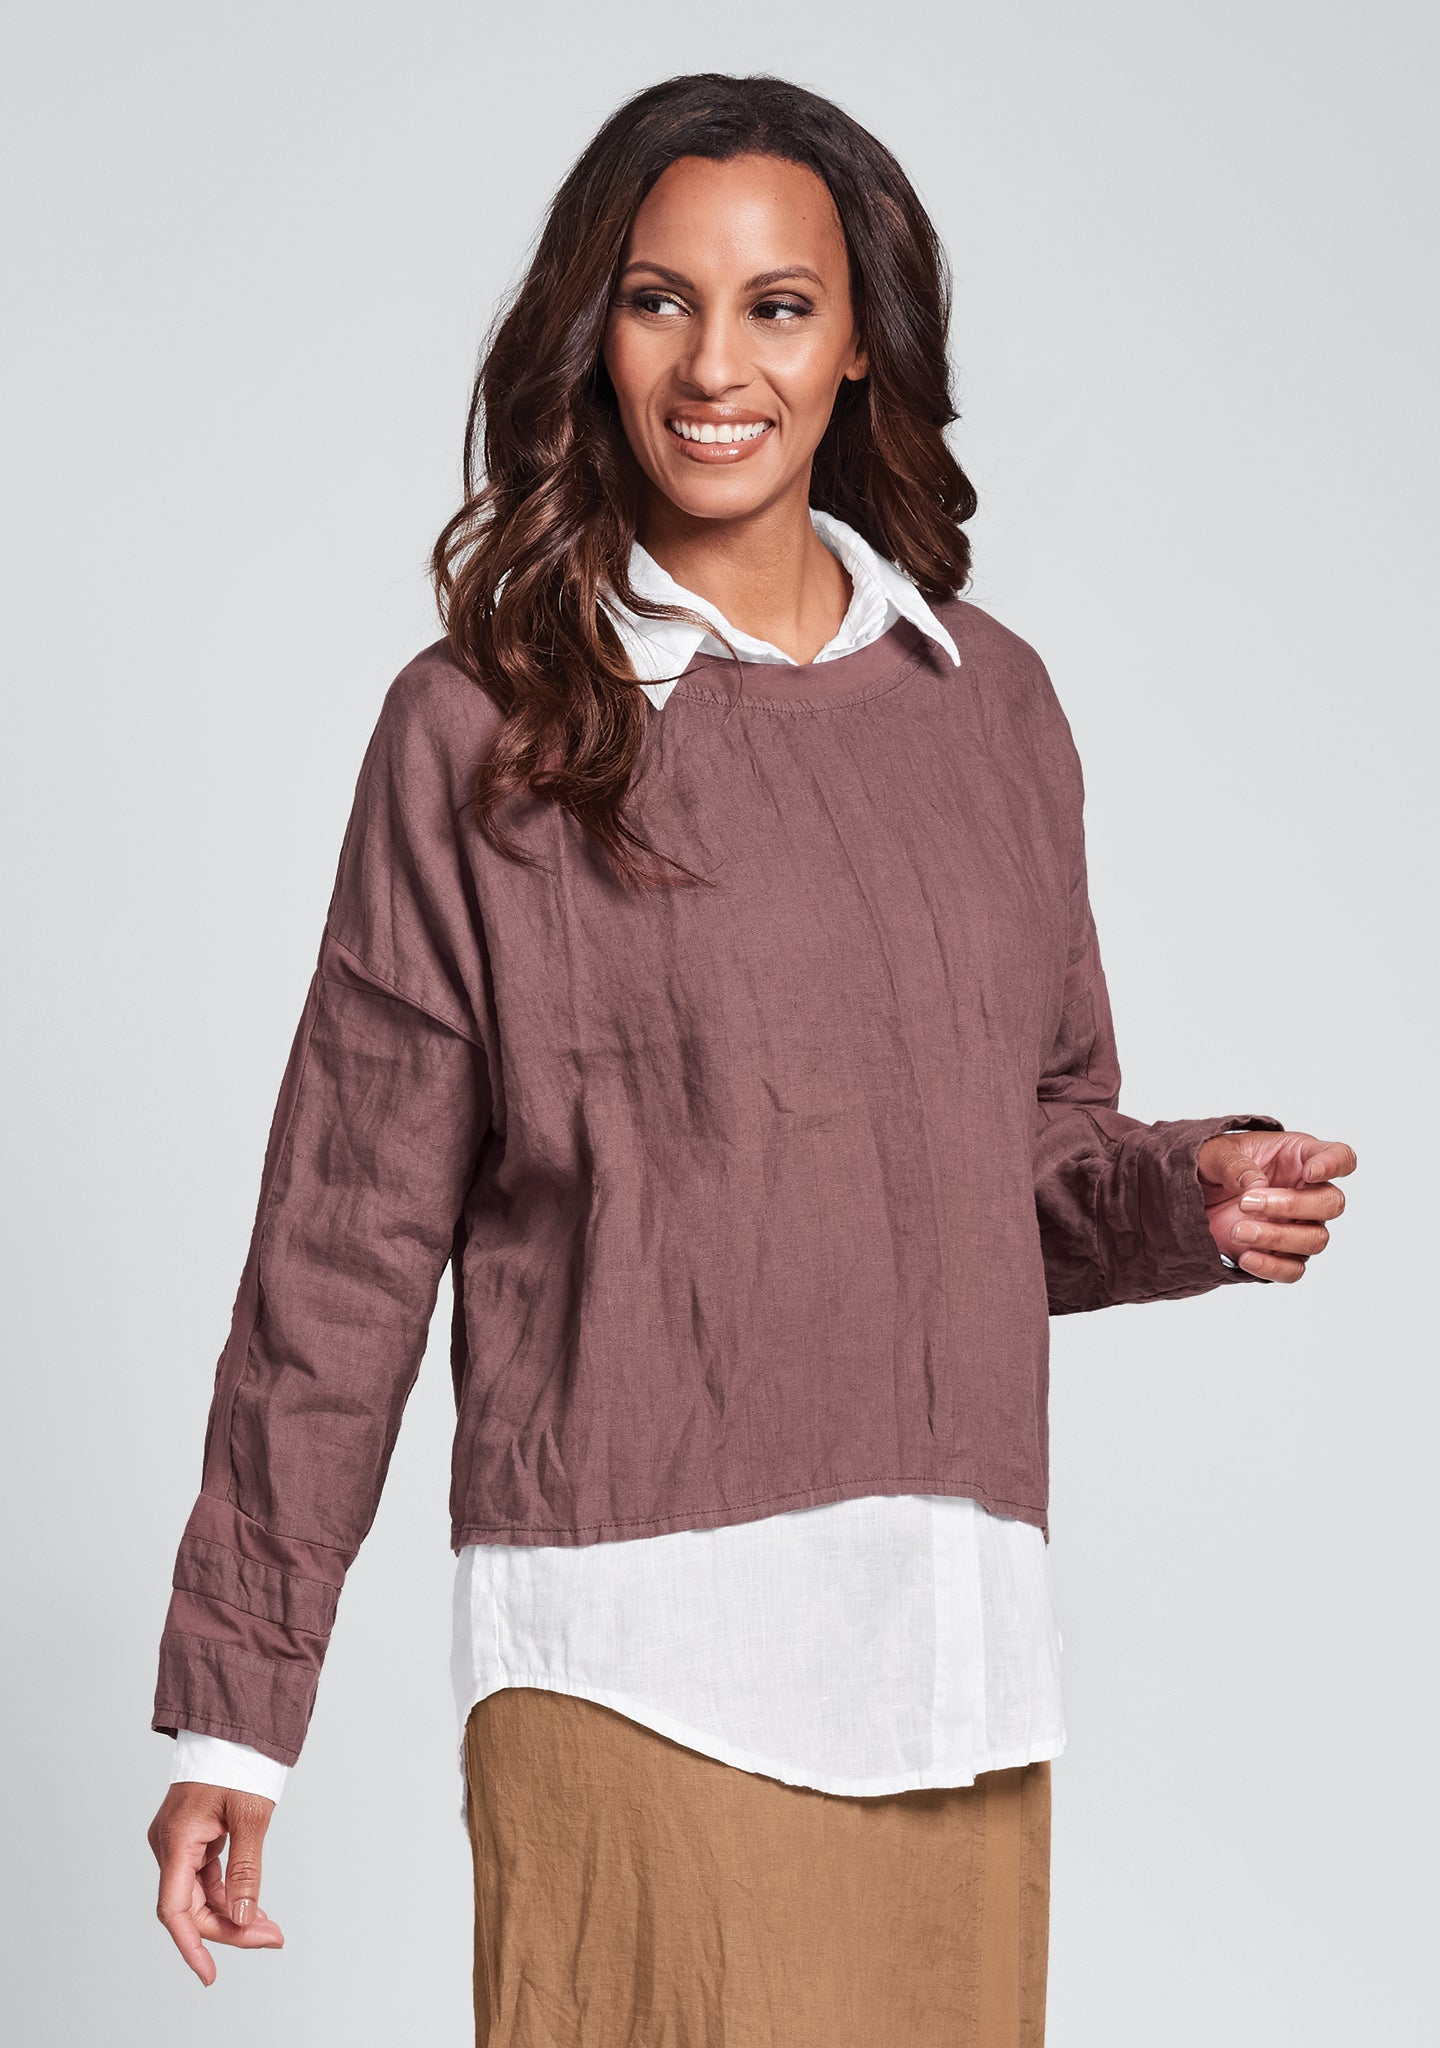 quincy top long sleeve linen shirt purple